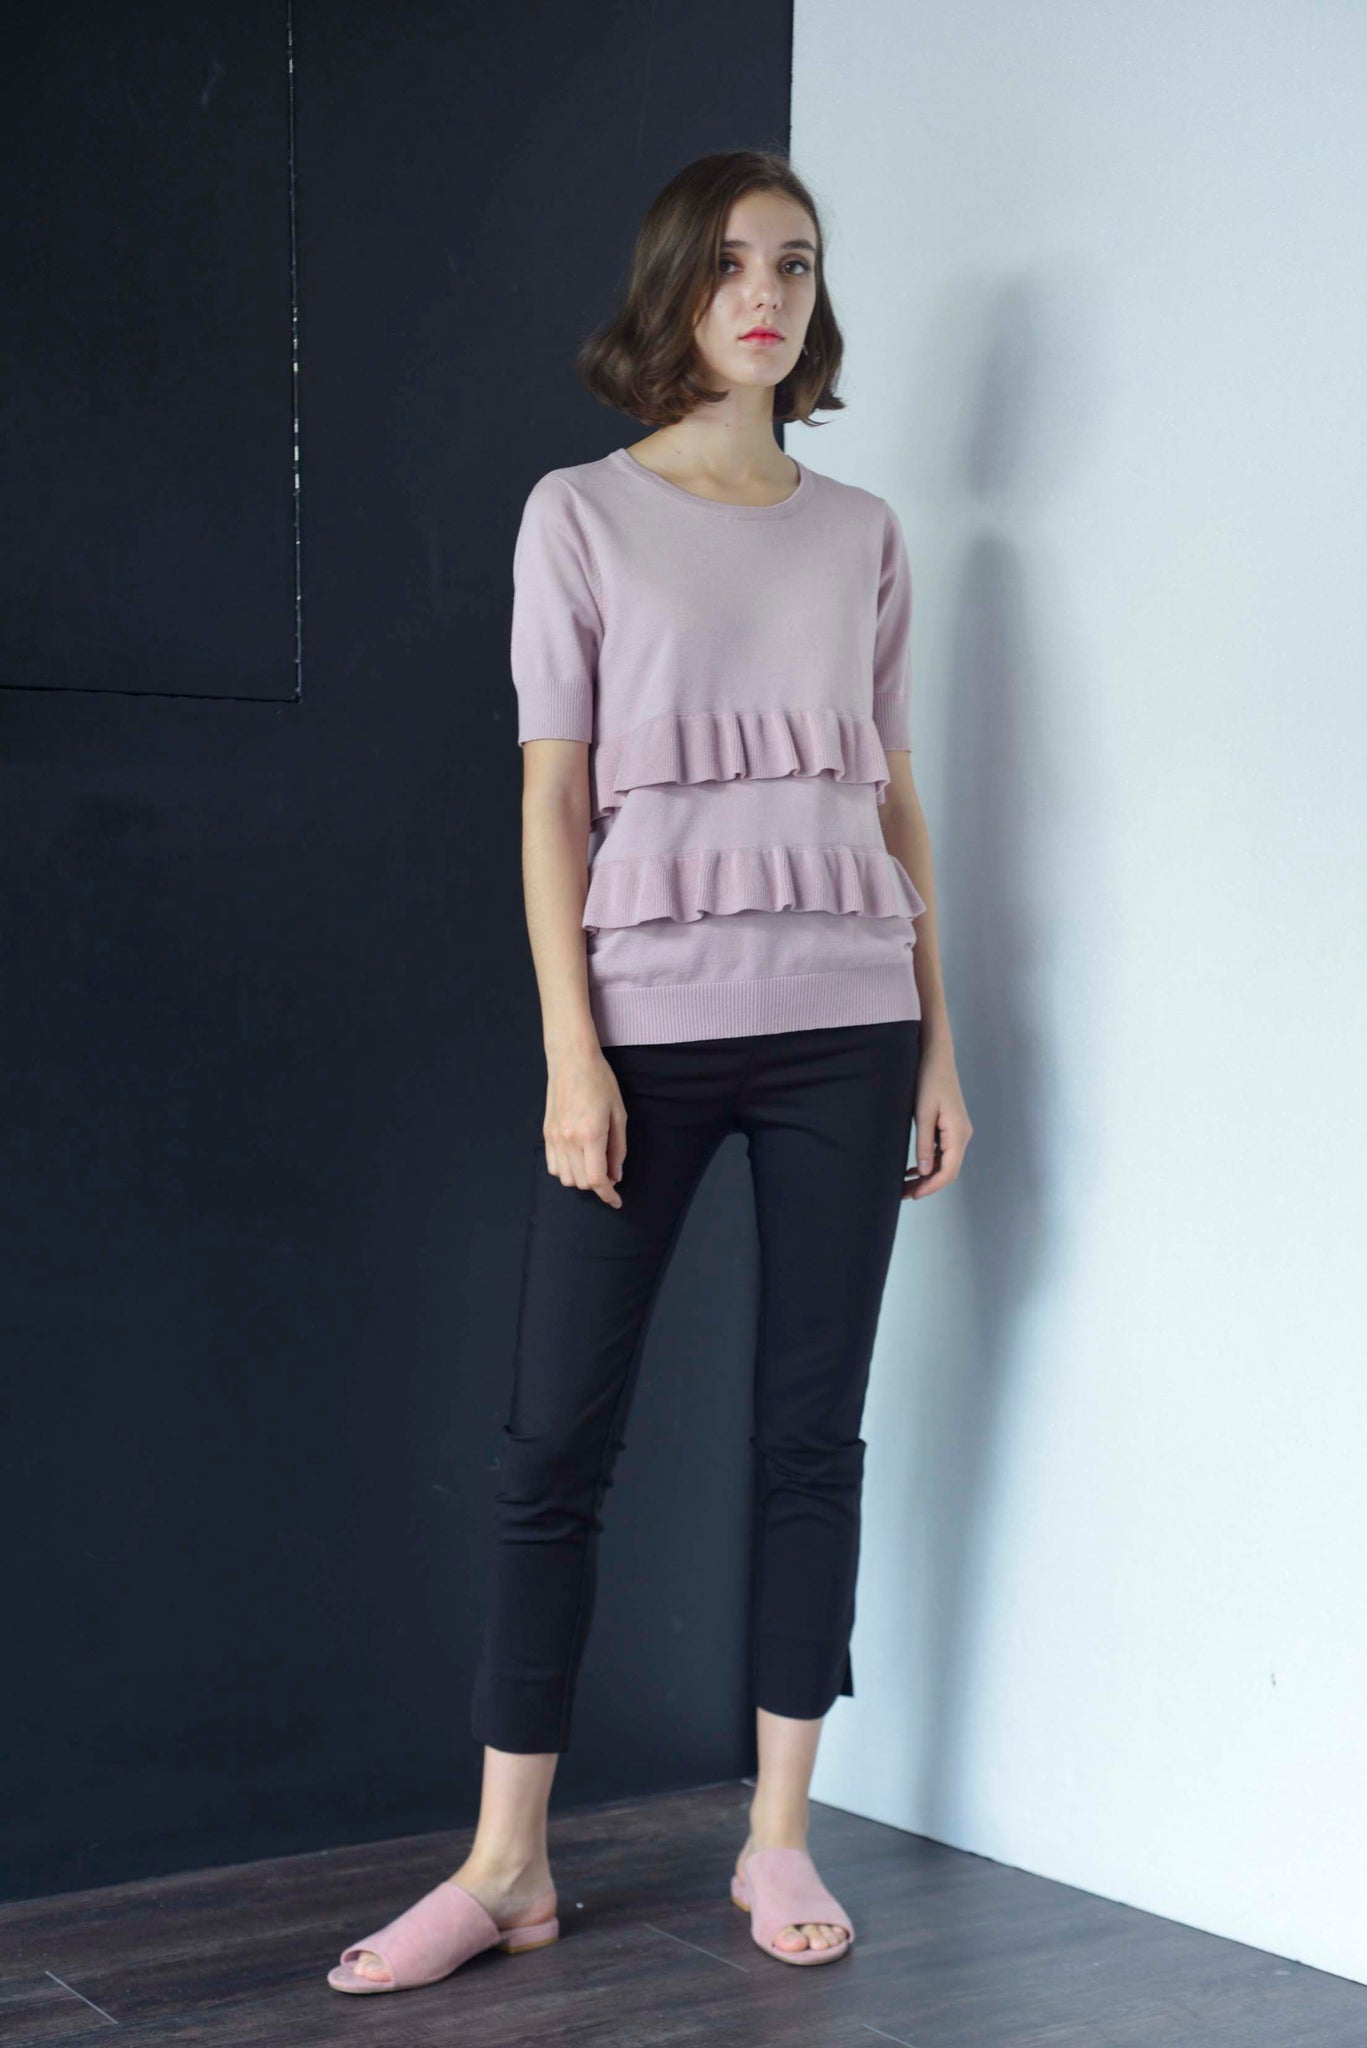 KNIT-Drika Top in Pink